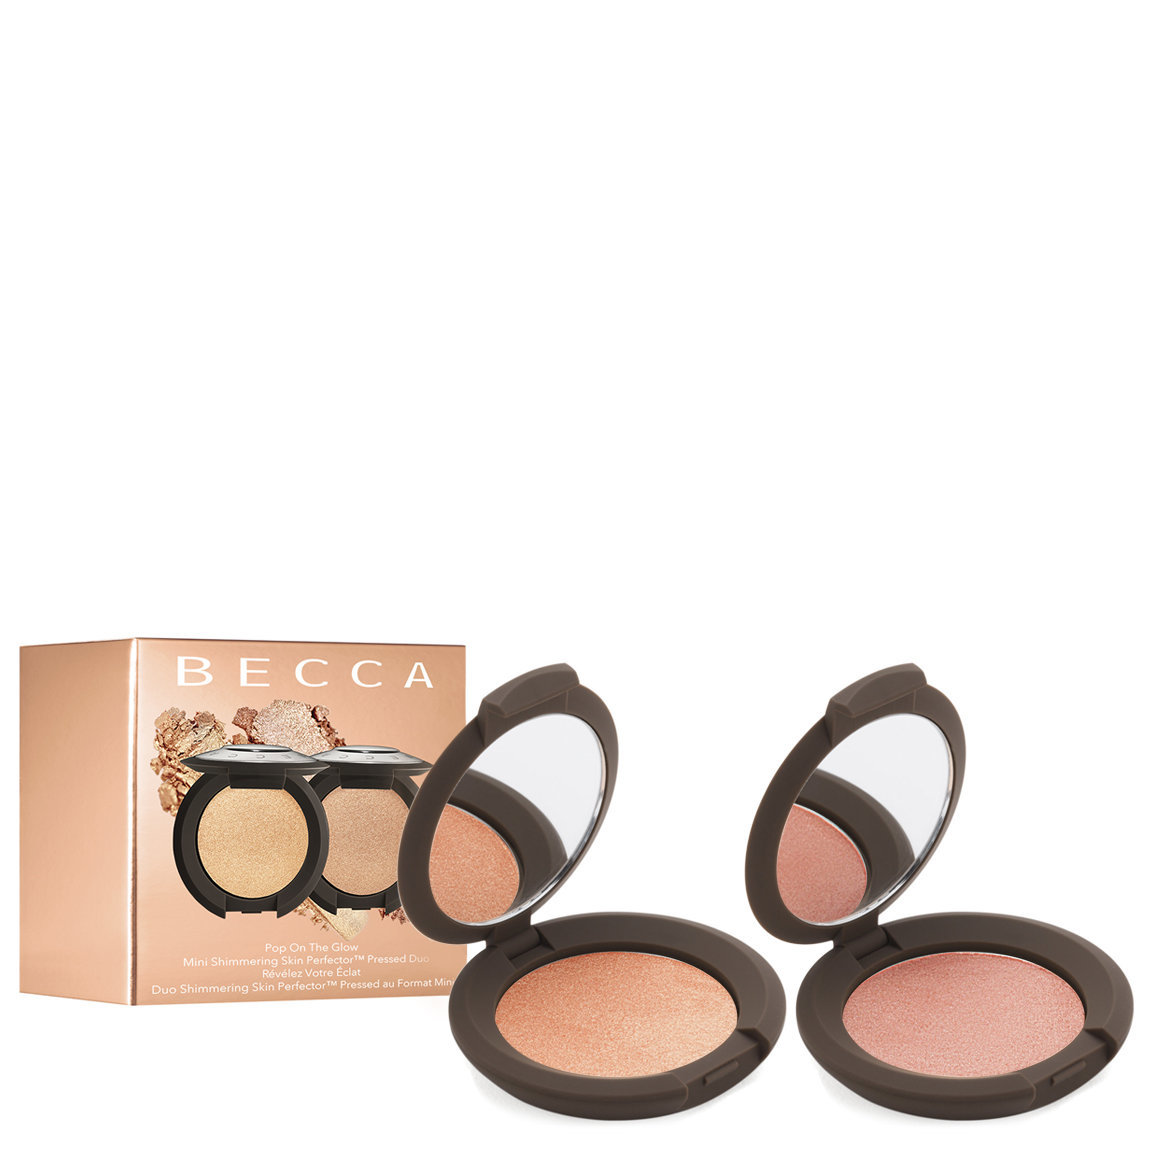 BECCA Pop on the Glow: Shimmering Skin Perfector Pressed Duo product swatch.